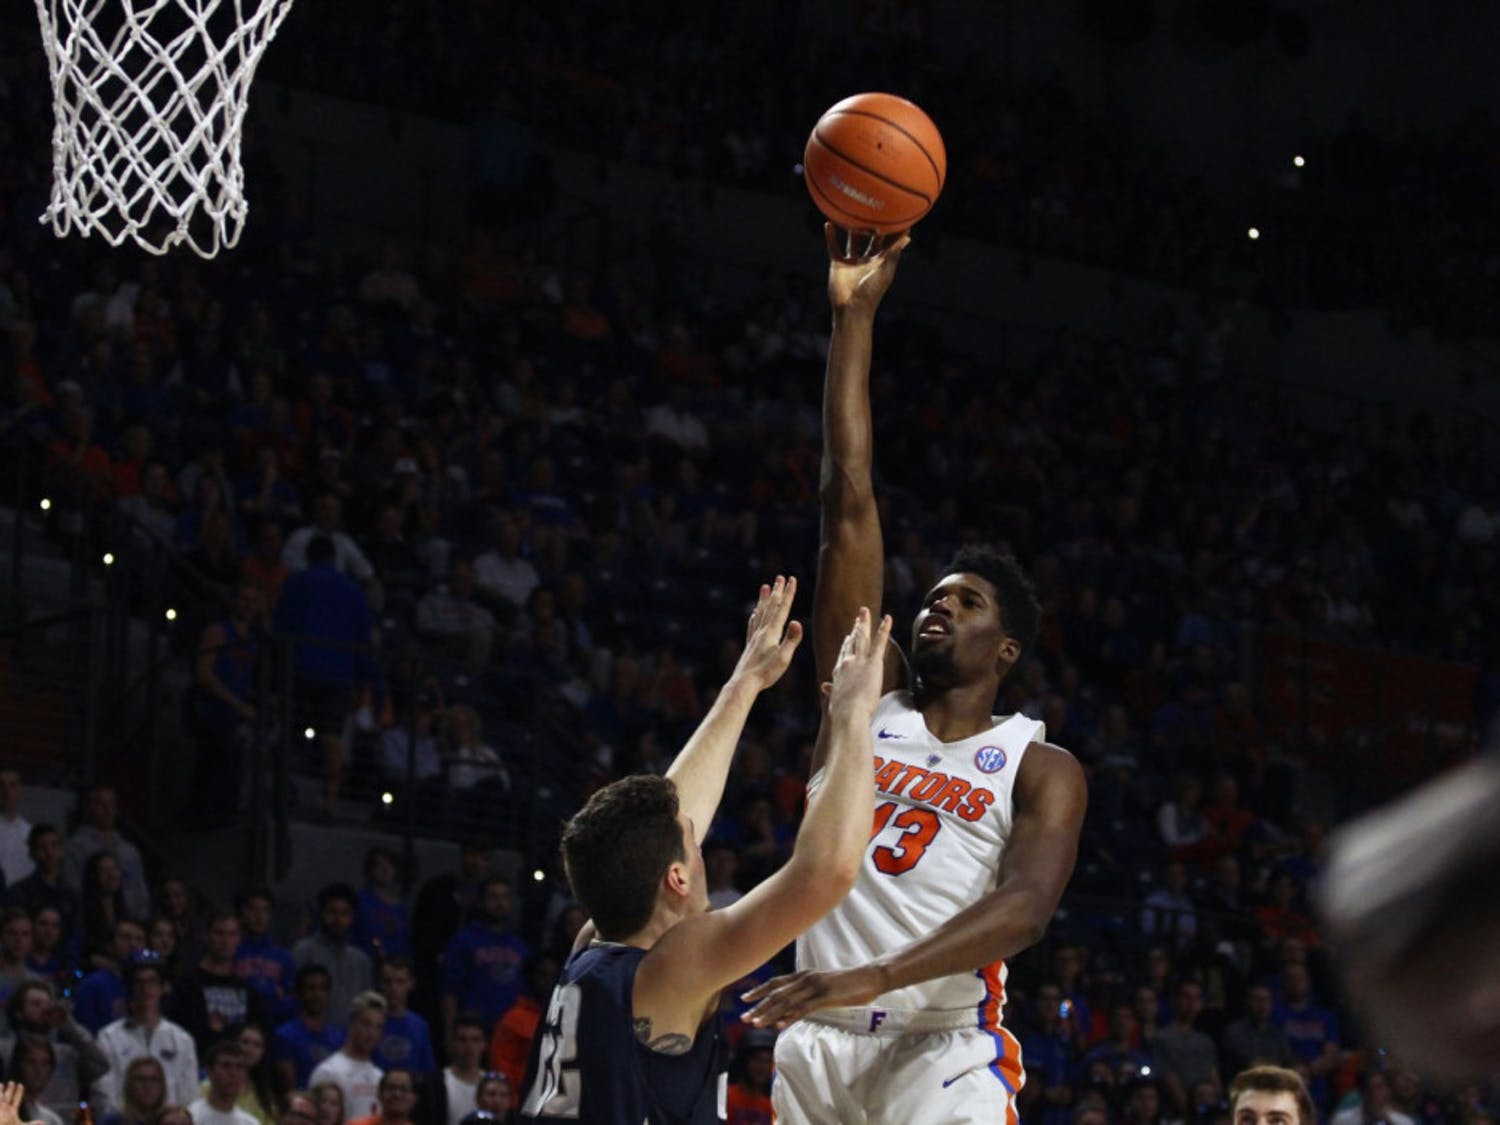 """Florida coach Mike White said center Kevarrius Hayes is the only player devoting 100-percent effort to rebounding. """"He's been asked to go, it's his job,"""" White said, """"Kevarrius Hayes - and he's hard to block out because he goes 10 out of 10 times."""""""